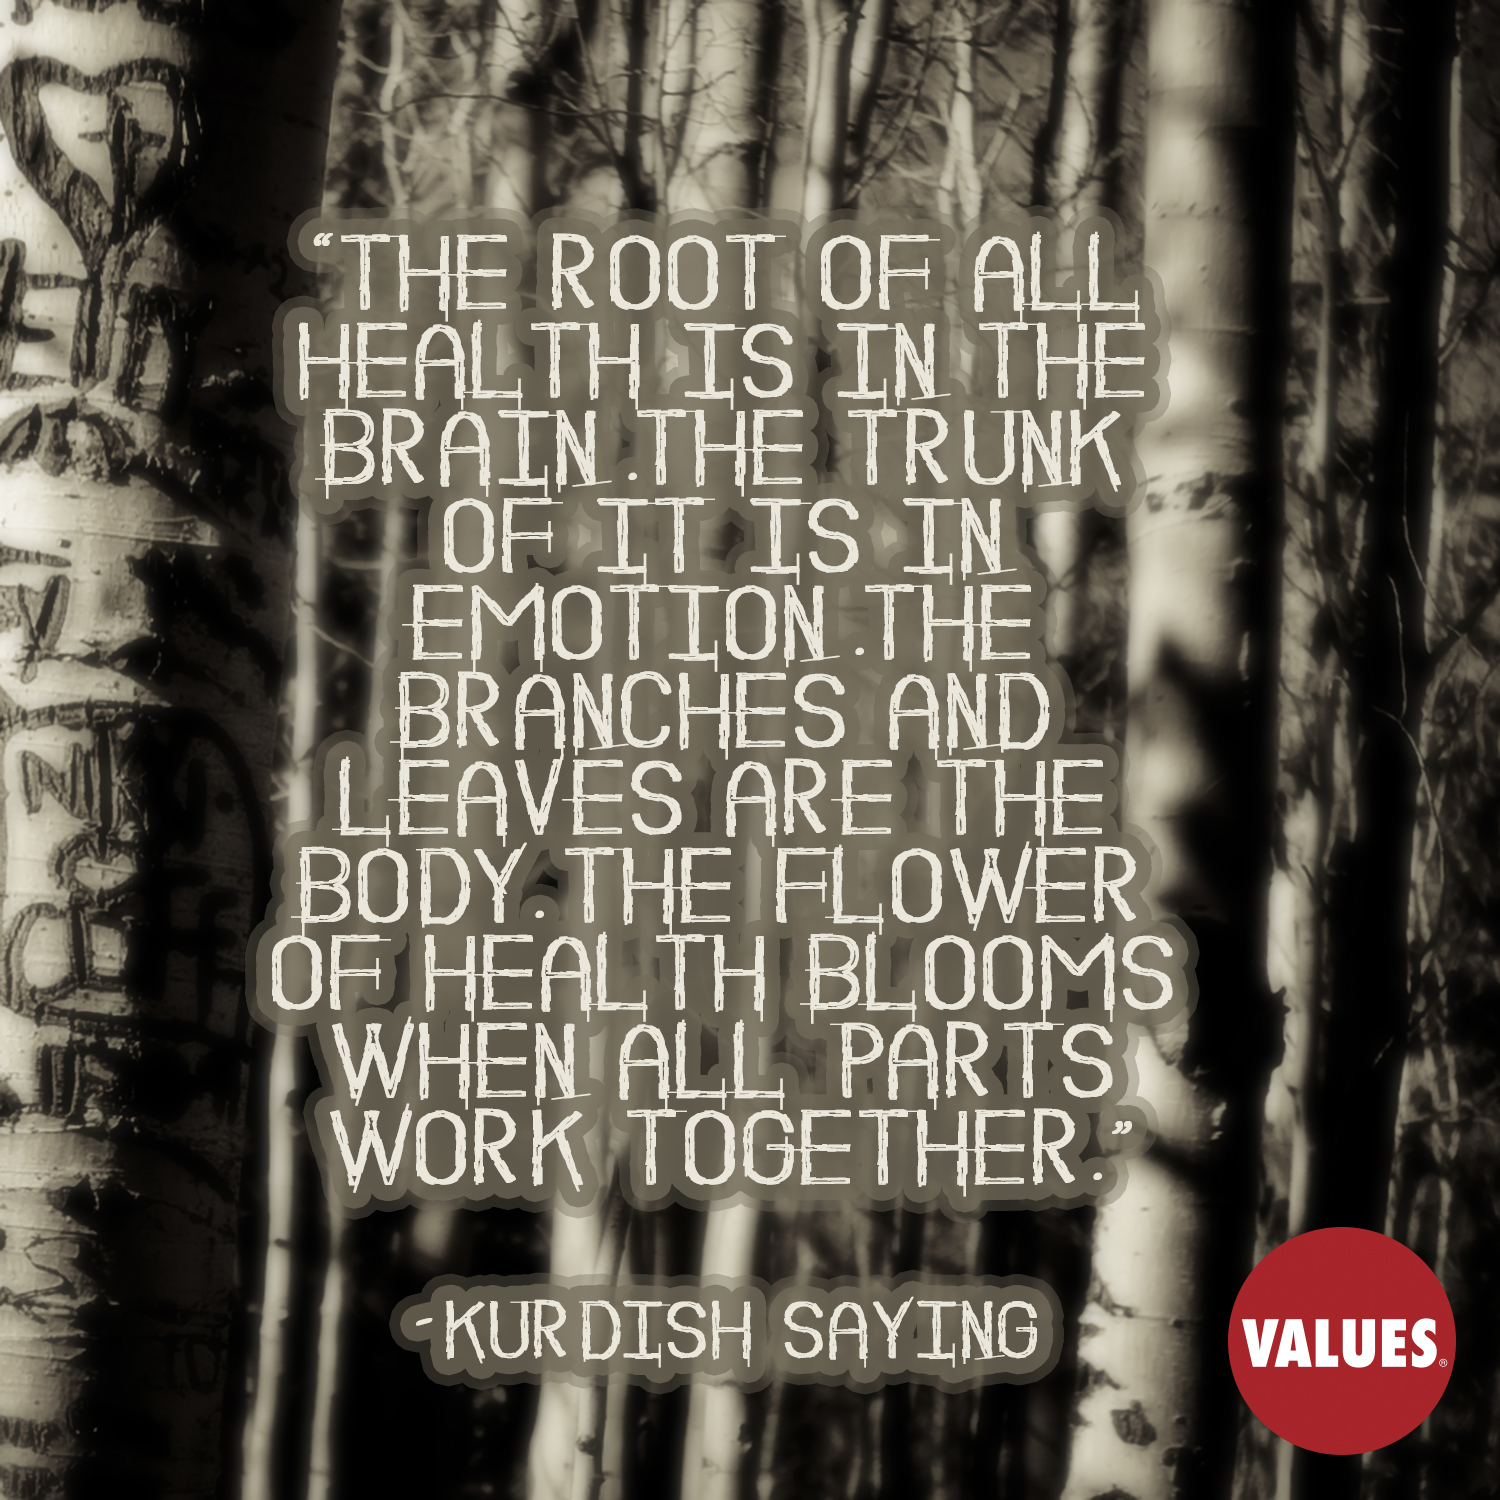 The root of all health is in the brain. The trunk of it is in emotion. The branches and leaves are the body. The flower of health blooms when all parts work together. —Kurdish saying